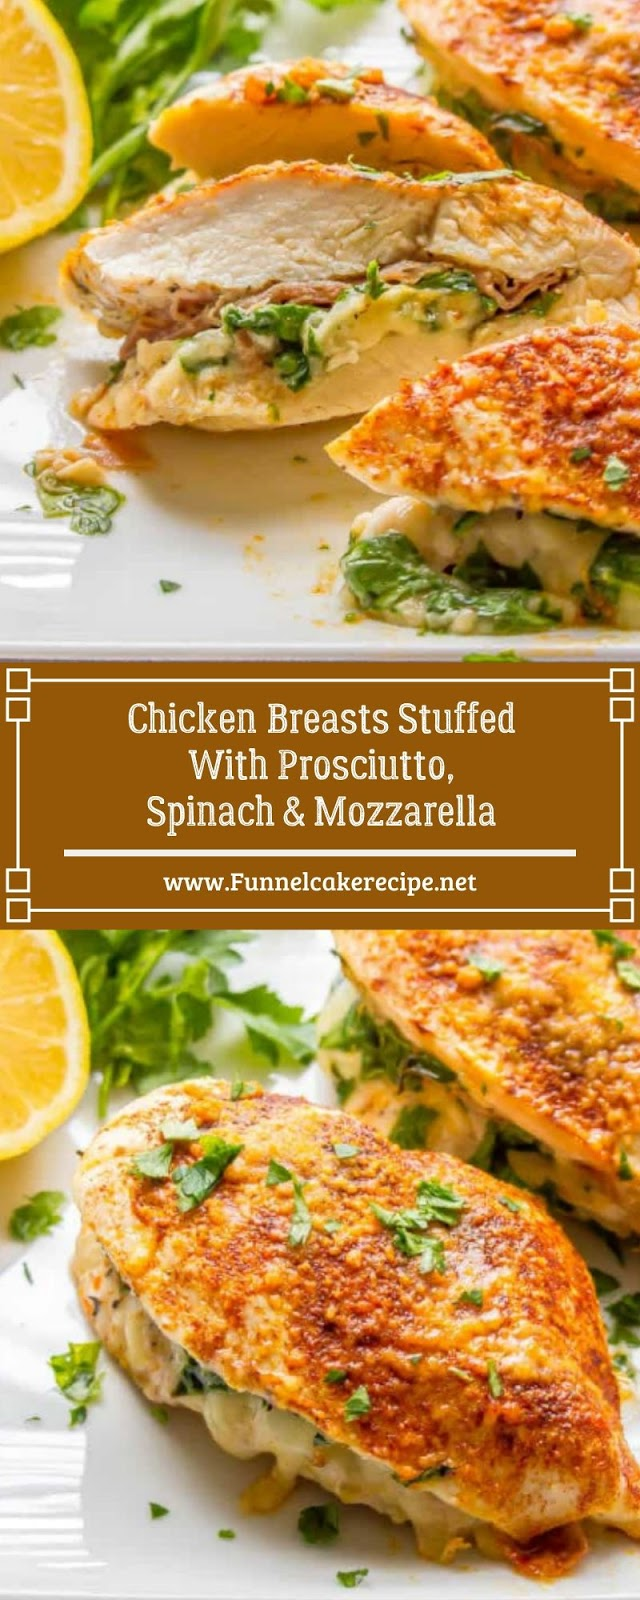 Chicken Breasts Stuffed With Prosciutto, Spinach & Mozzarella